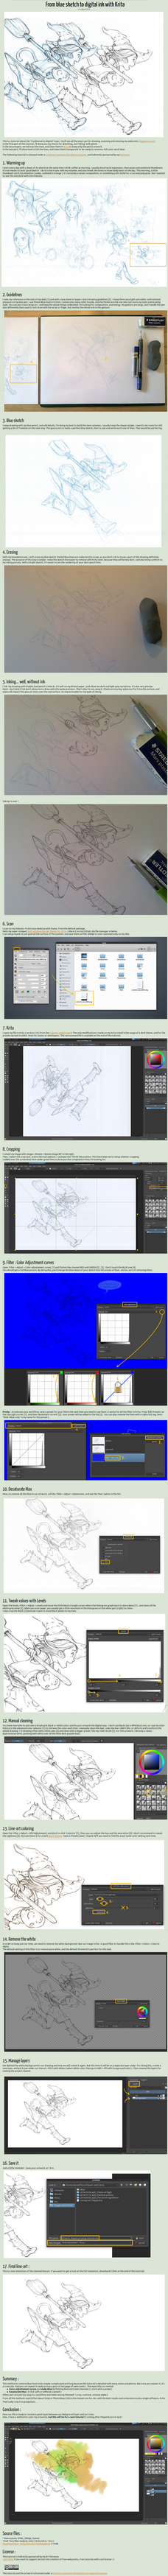 From blue sketch to digital ink with Krita by Deevad